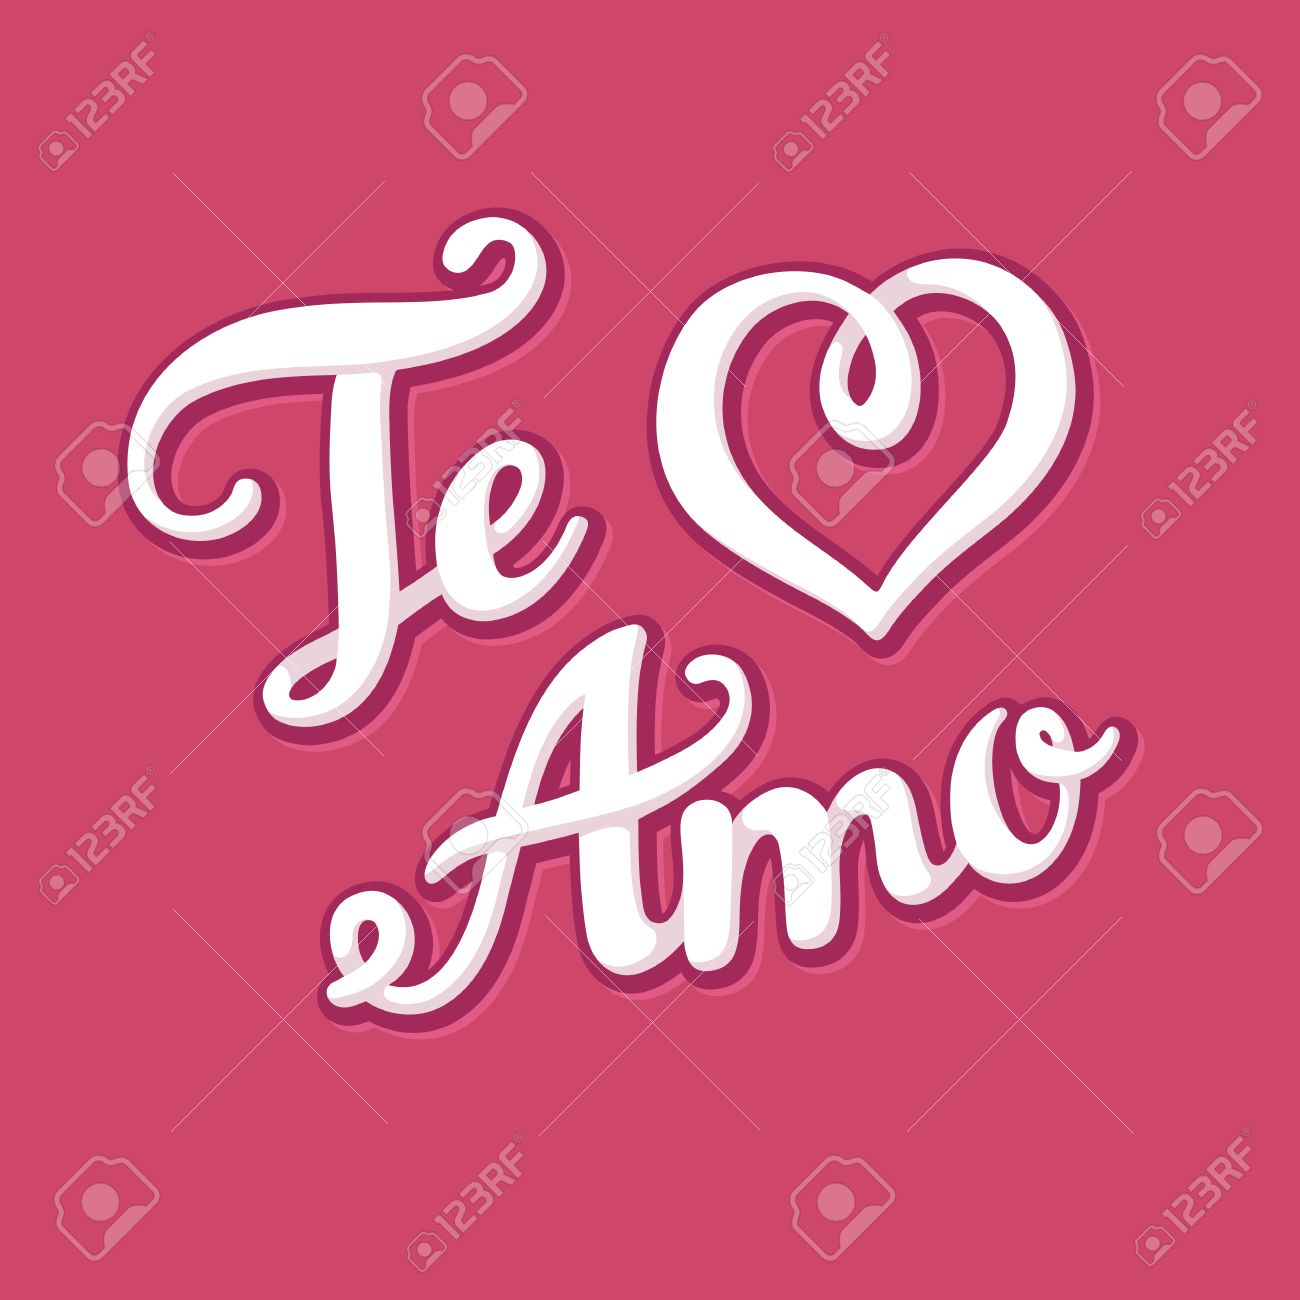 Te Amo (I Love You In Spanish) Hand Drawn Lettering With Heart Shape.